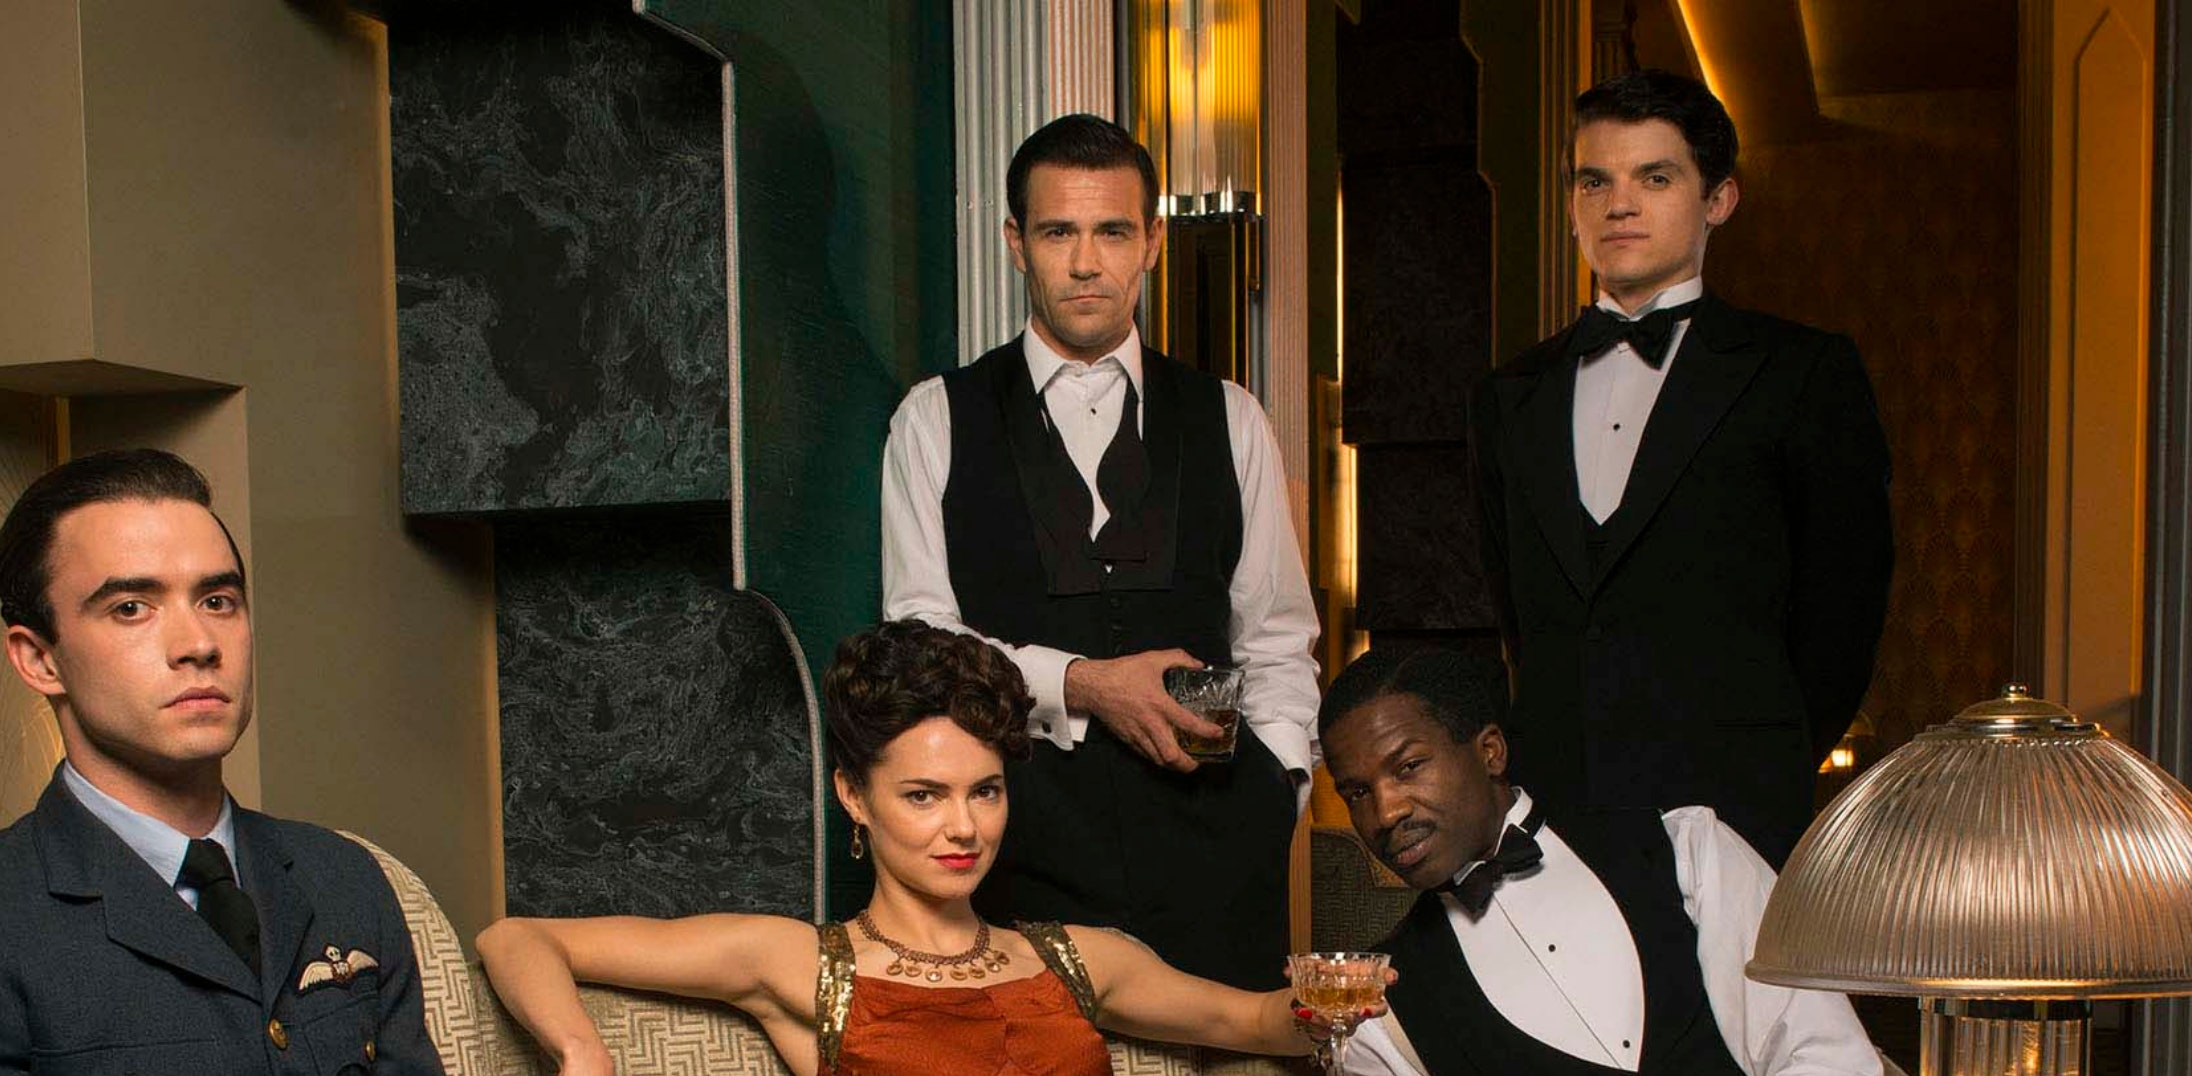 Is The Halcyon A True Story The British Drama Toes The